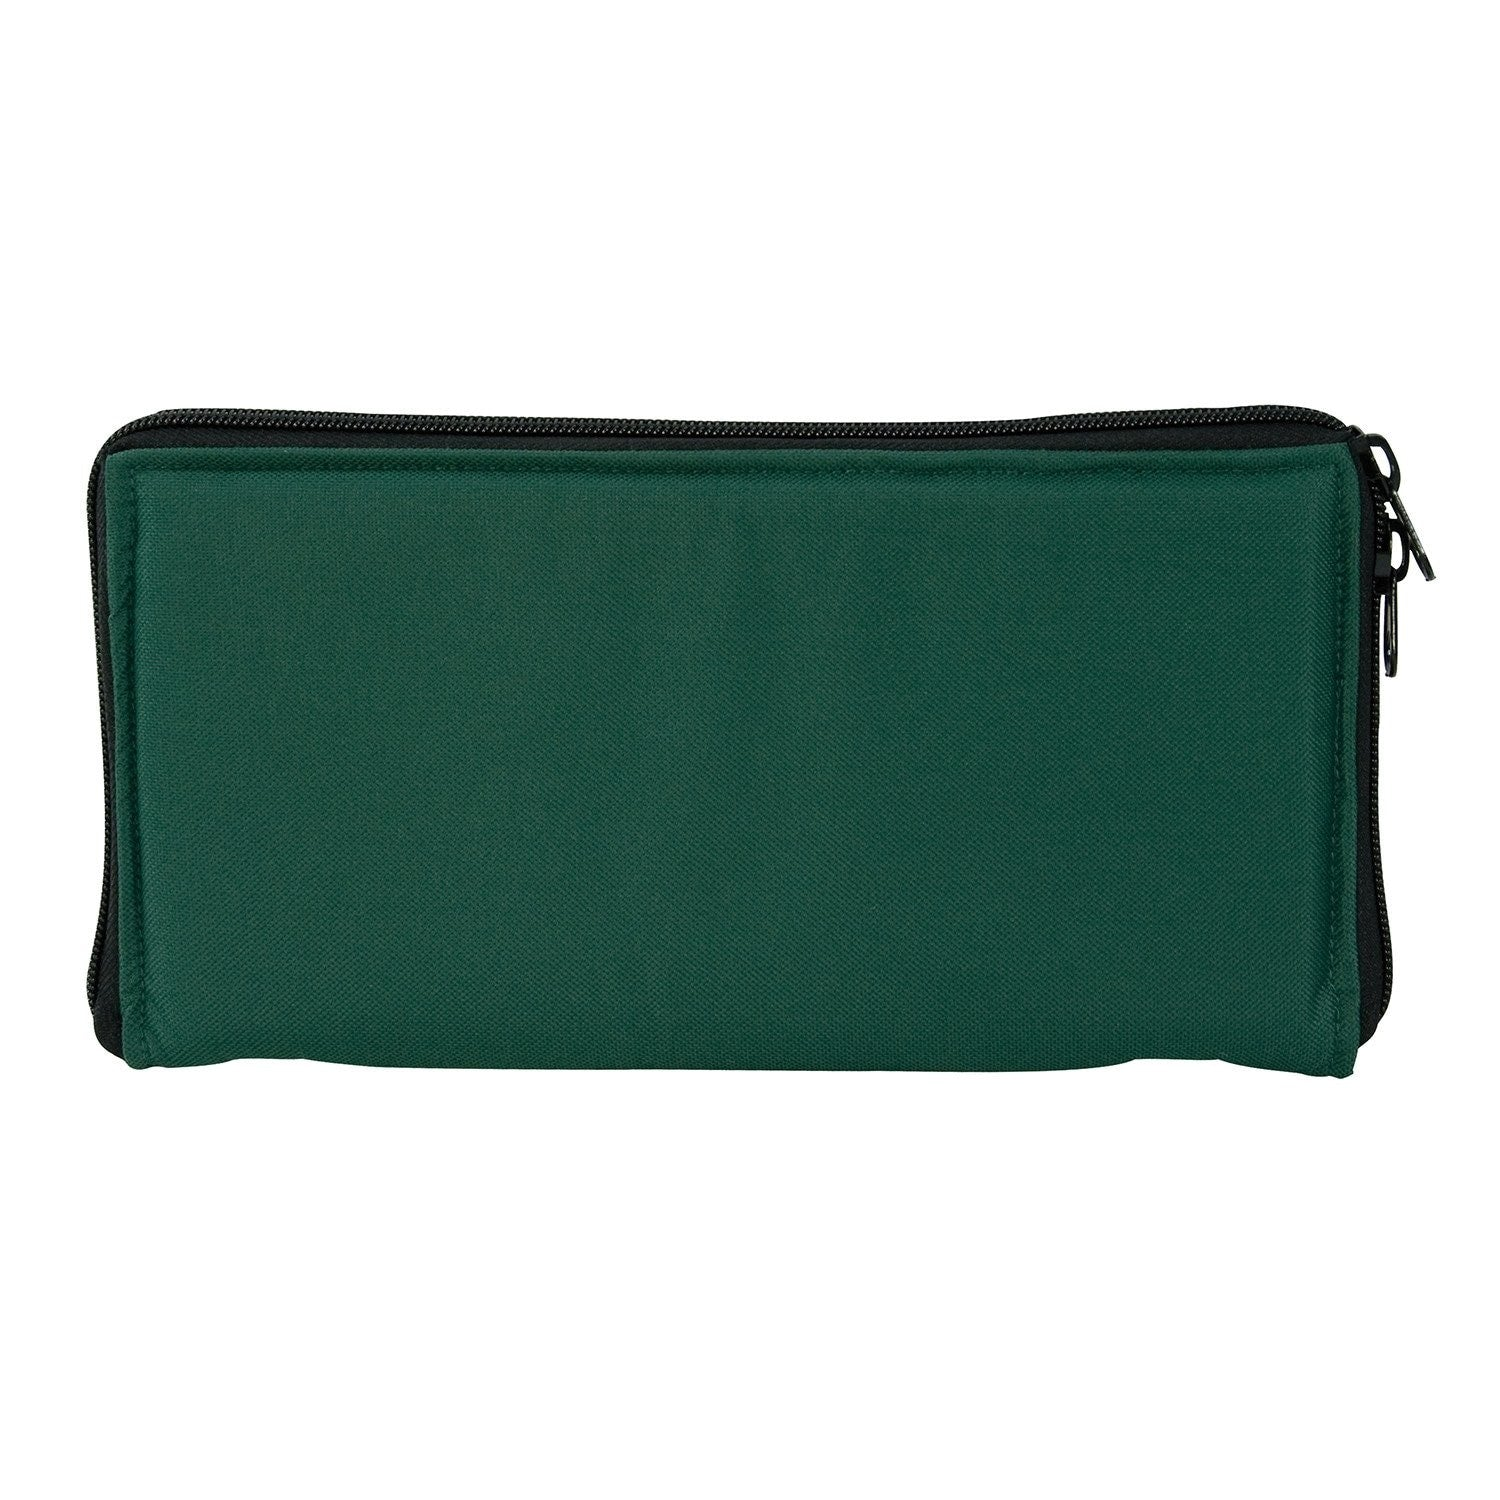 Range Bag Insert - Green - Range Bags And Accessories - Vism - Colonel Mustard